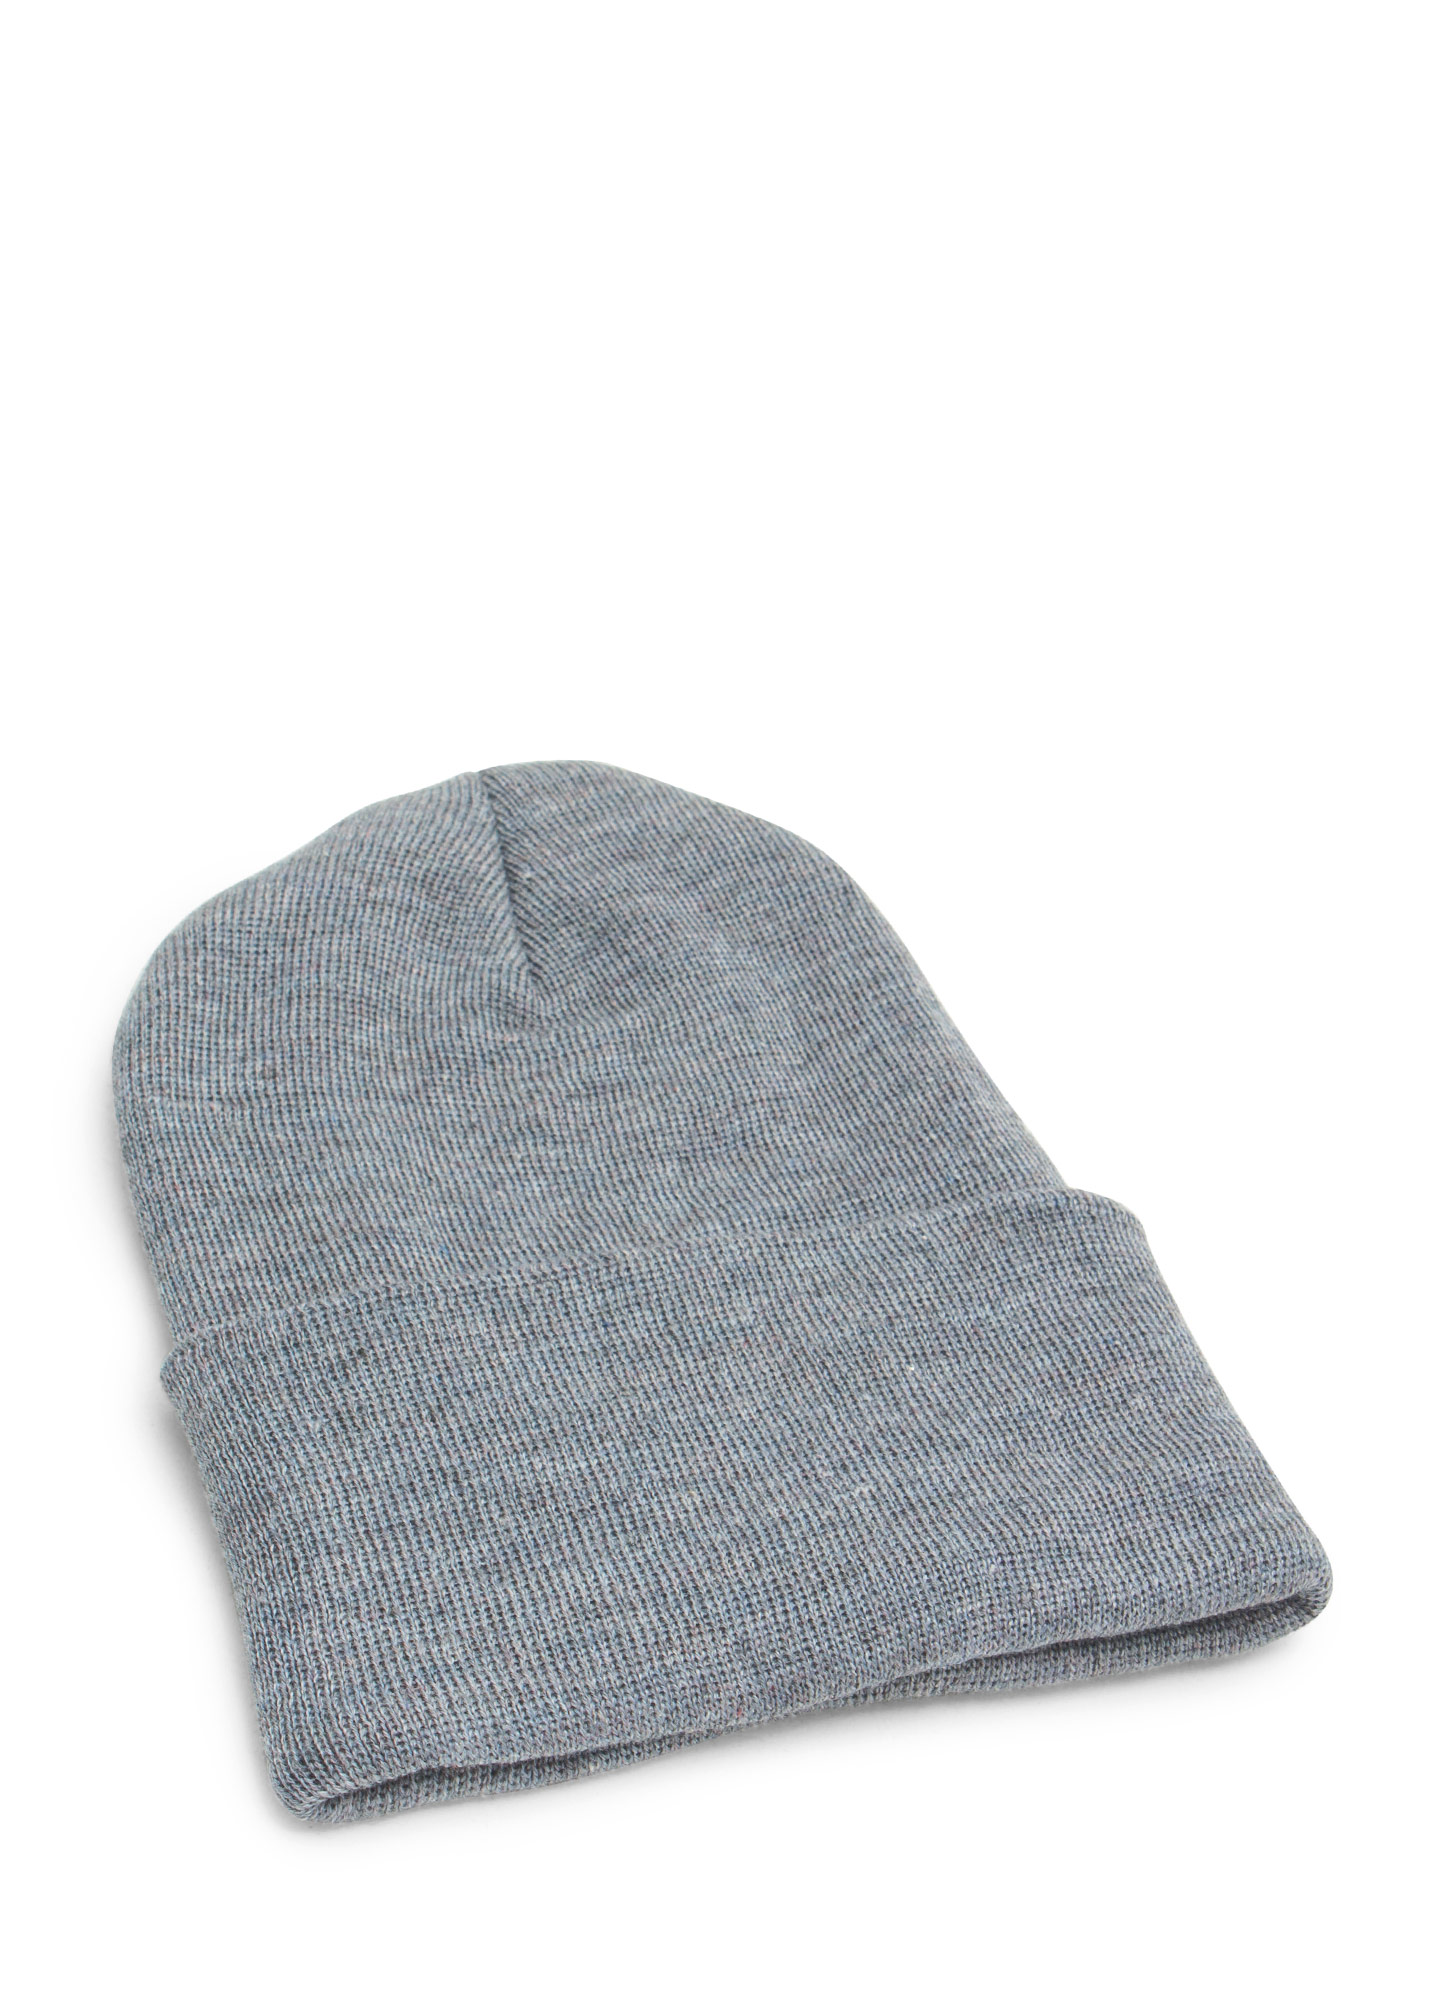 Super Long Sweater Beanie GREY